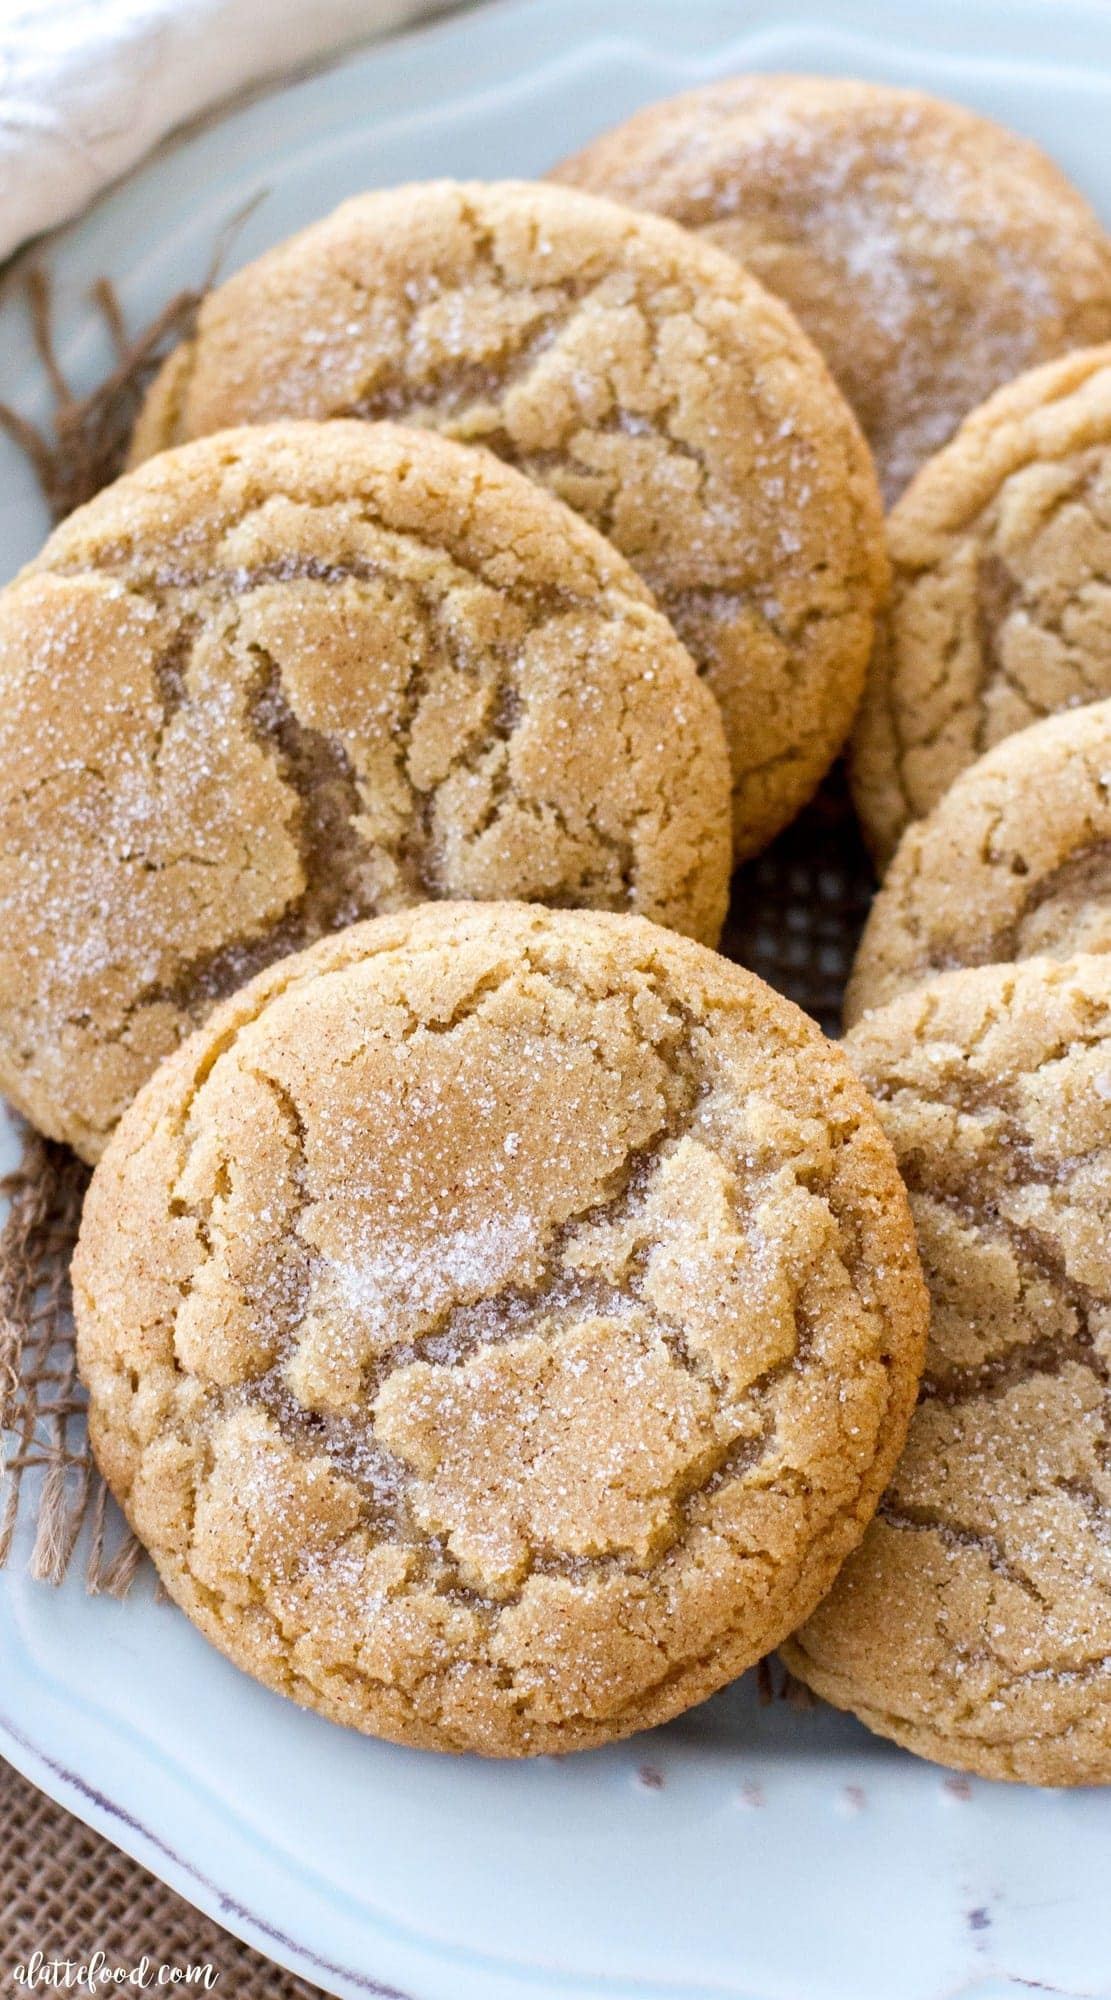 Snickerdoodle cookies on a green plate.